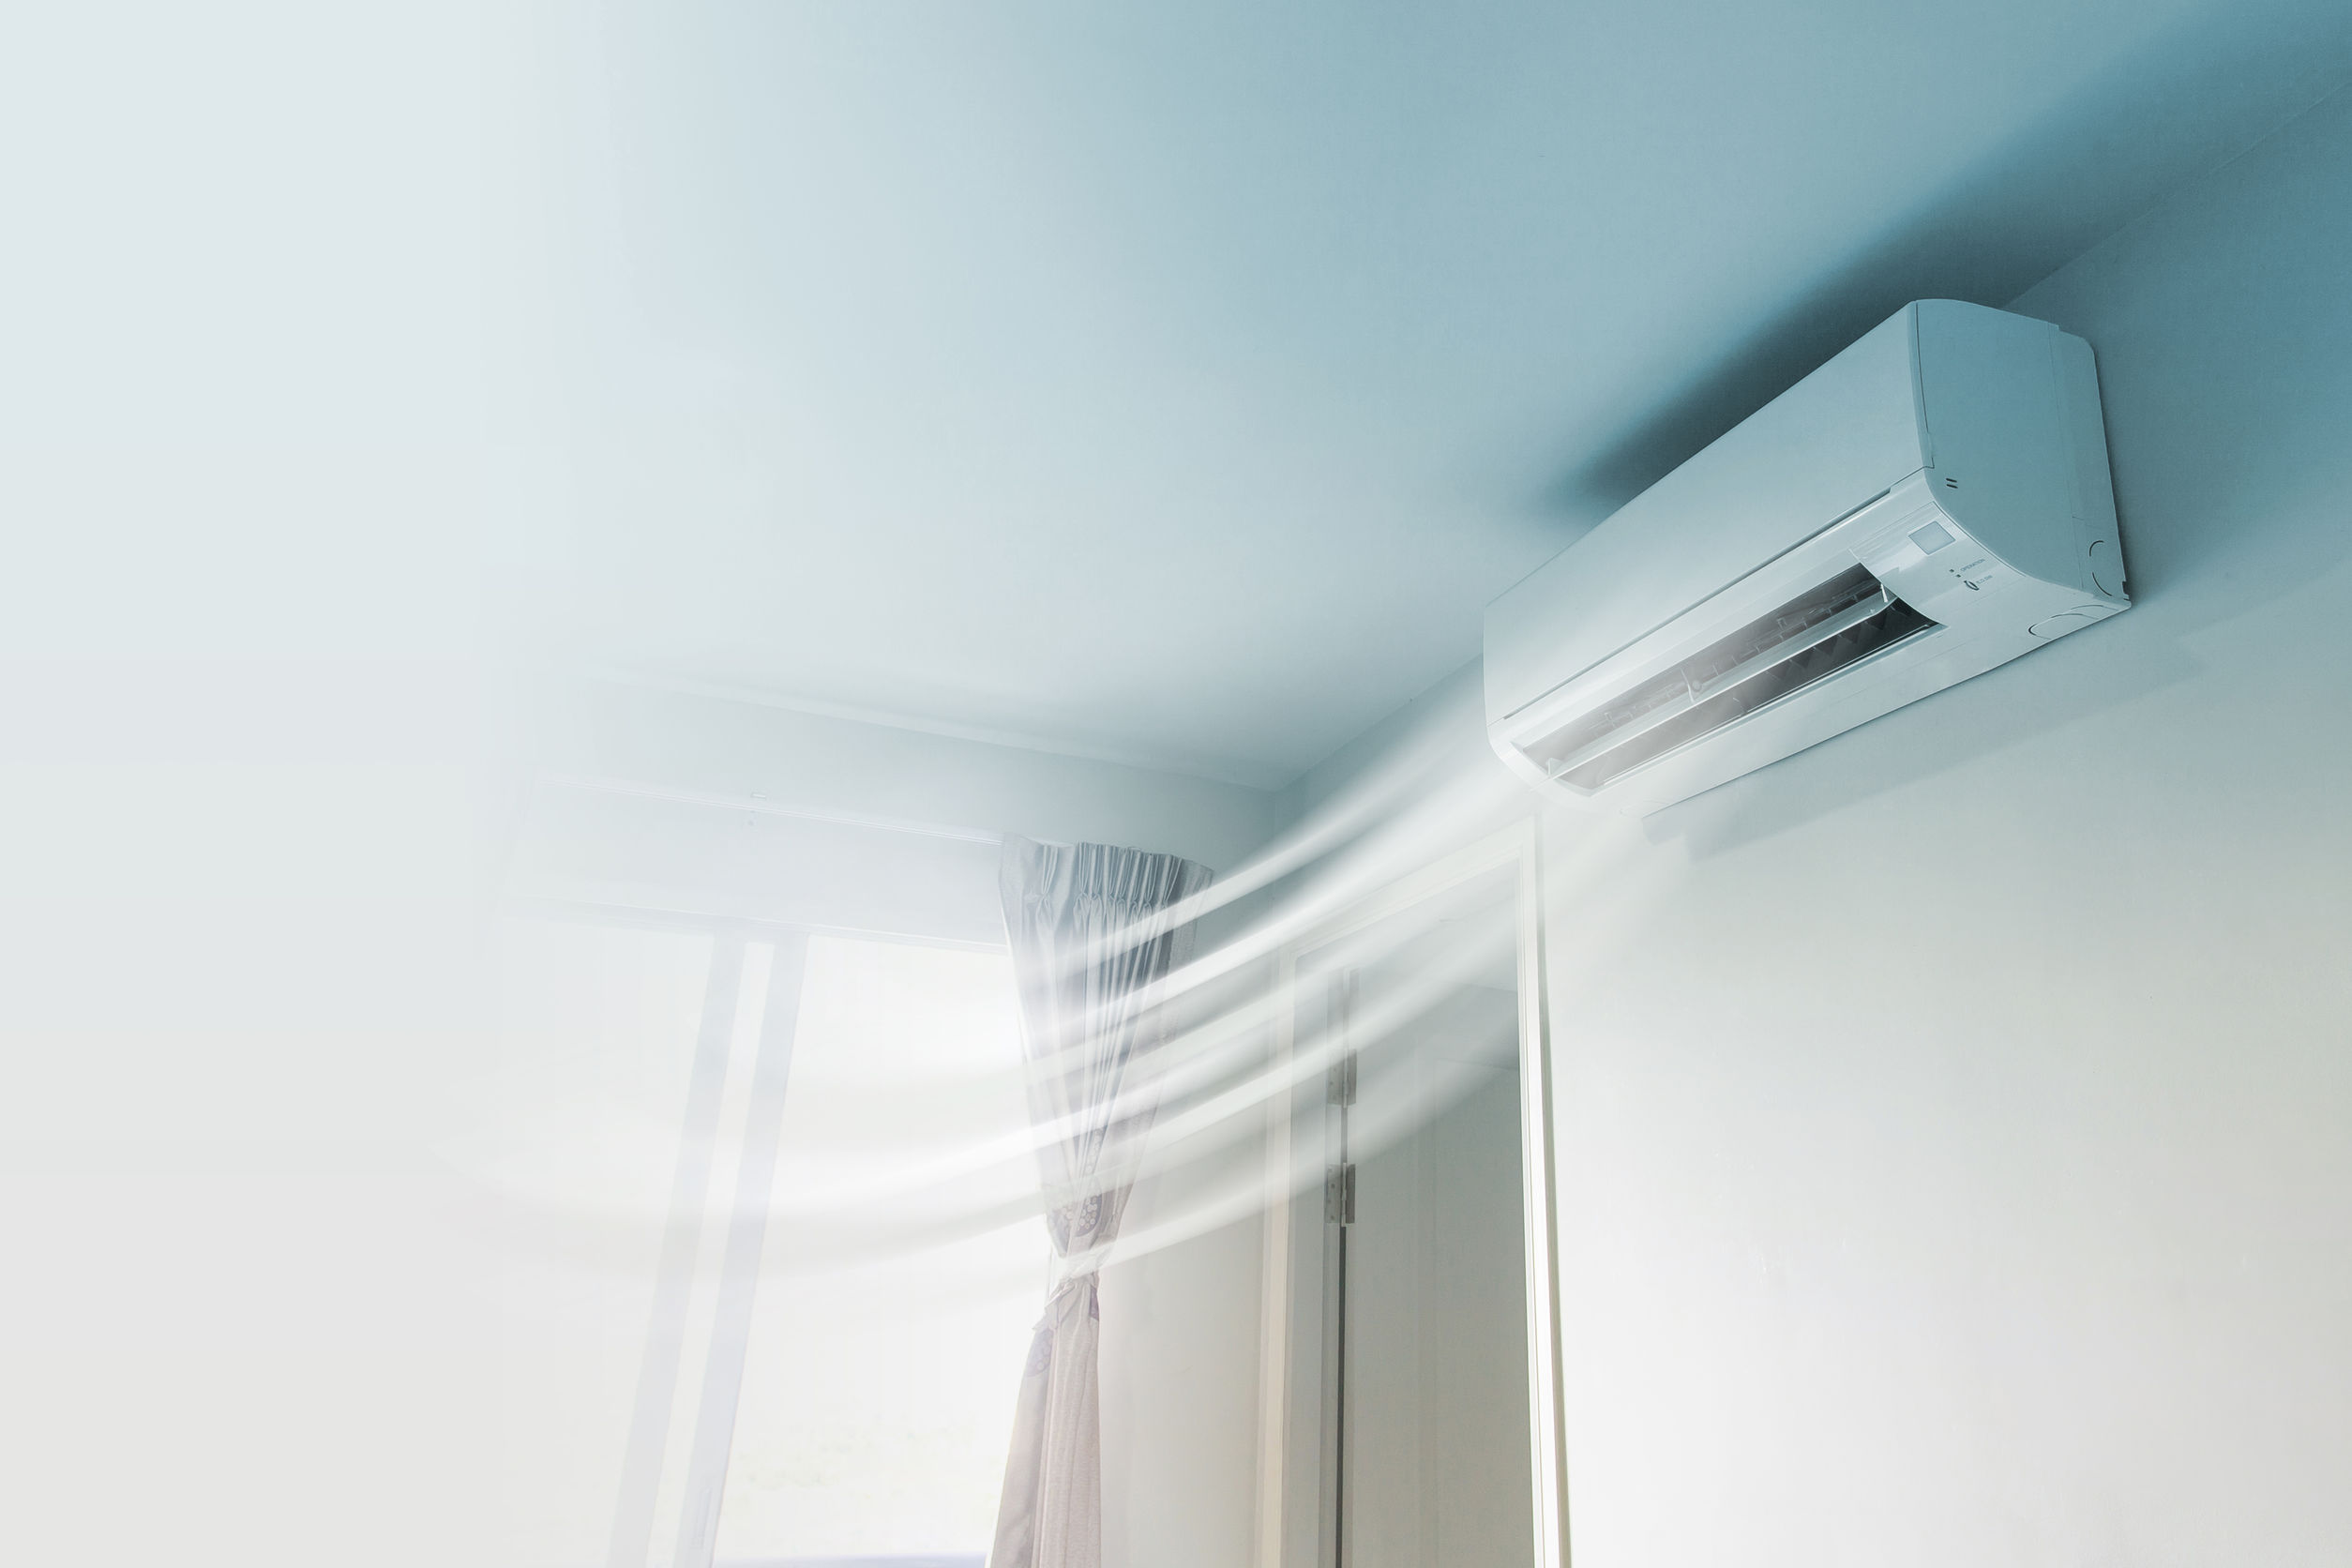 45668744 - air conditioner on wall background